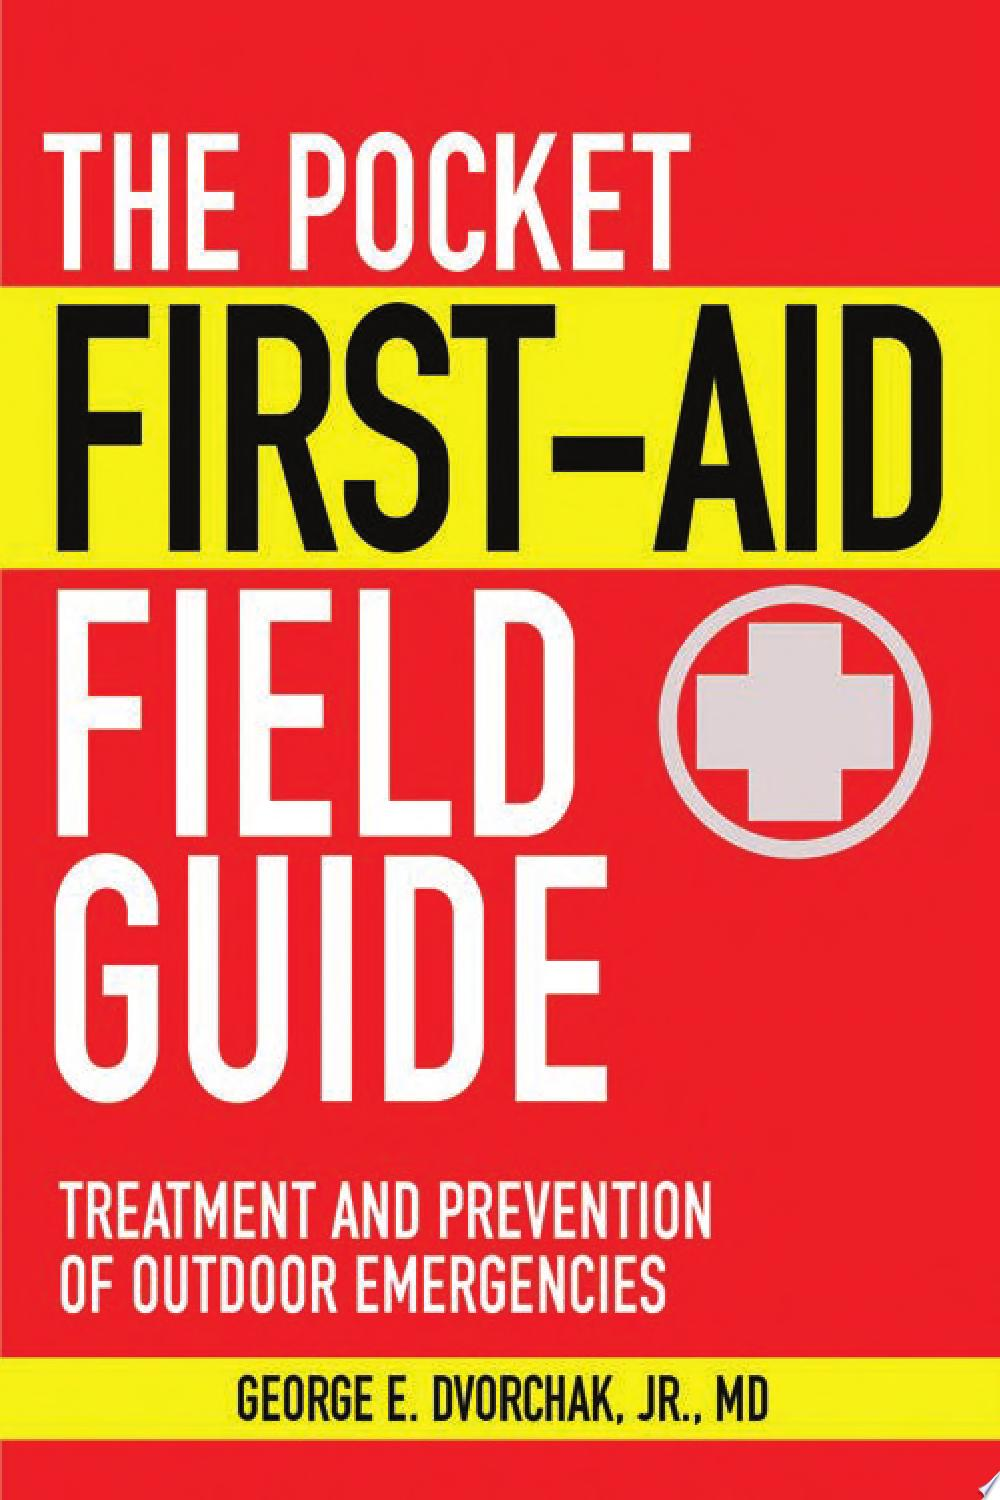 The Pocket First Aid Field Guide